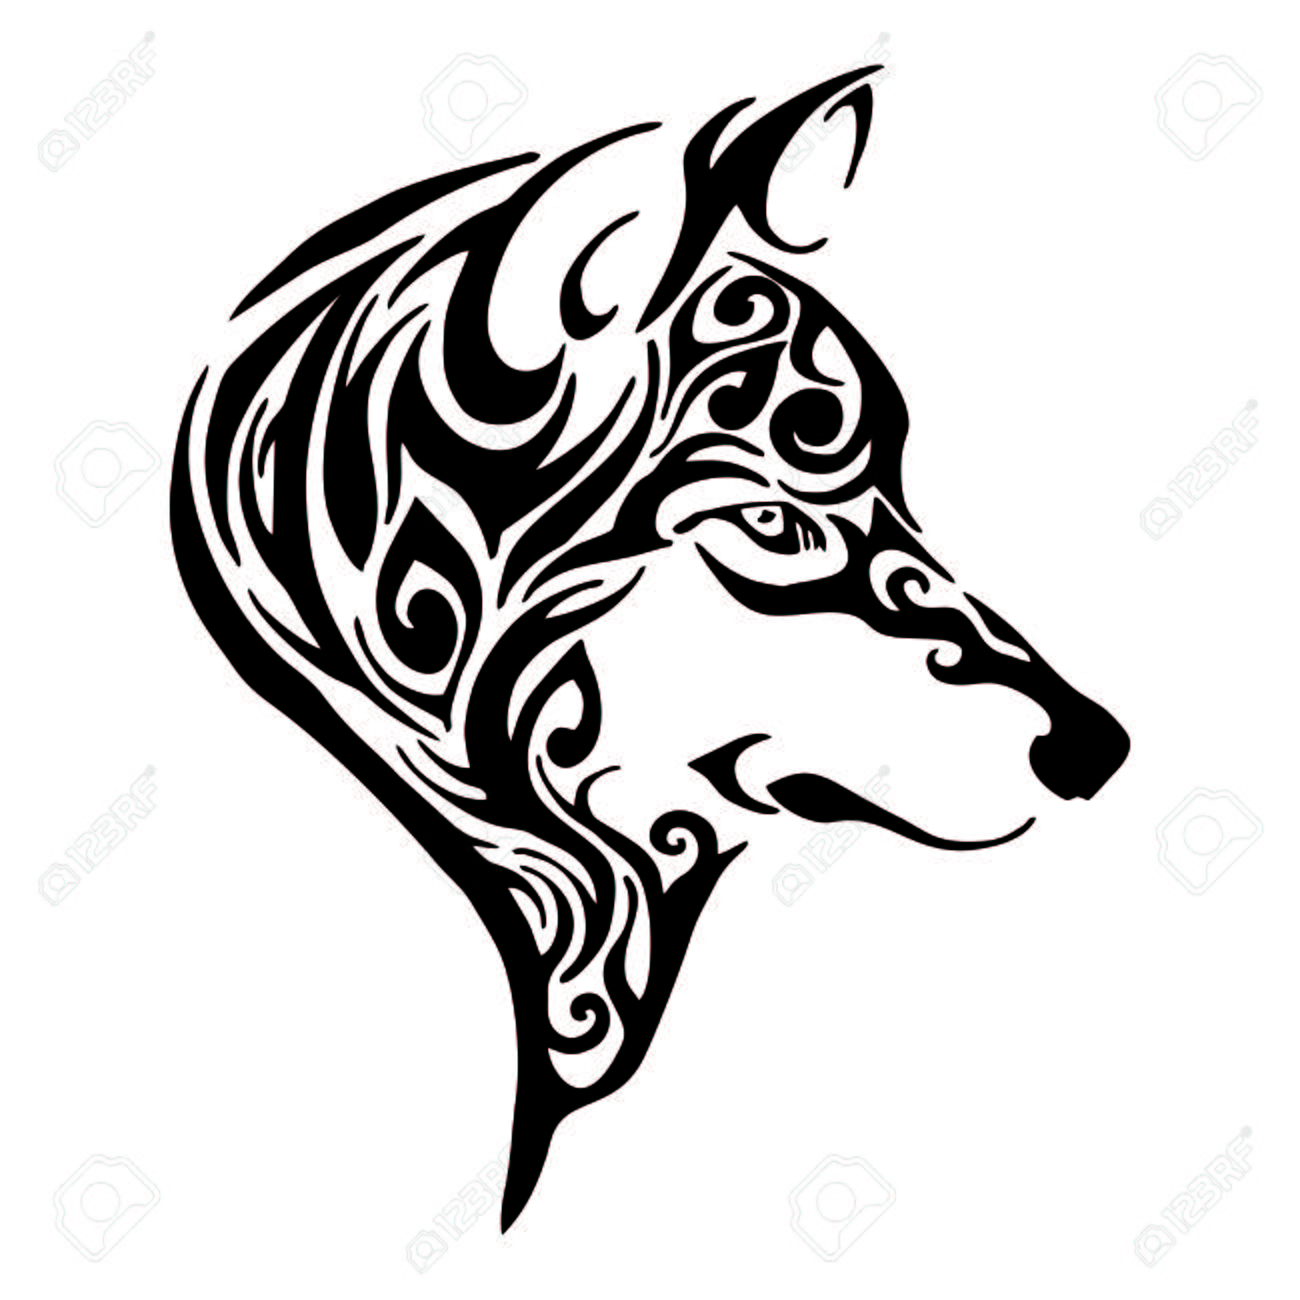 wolf head tribal tattoo sketch drawing isolated - 66538522